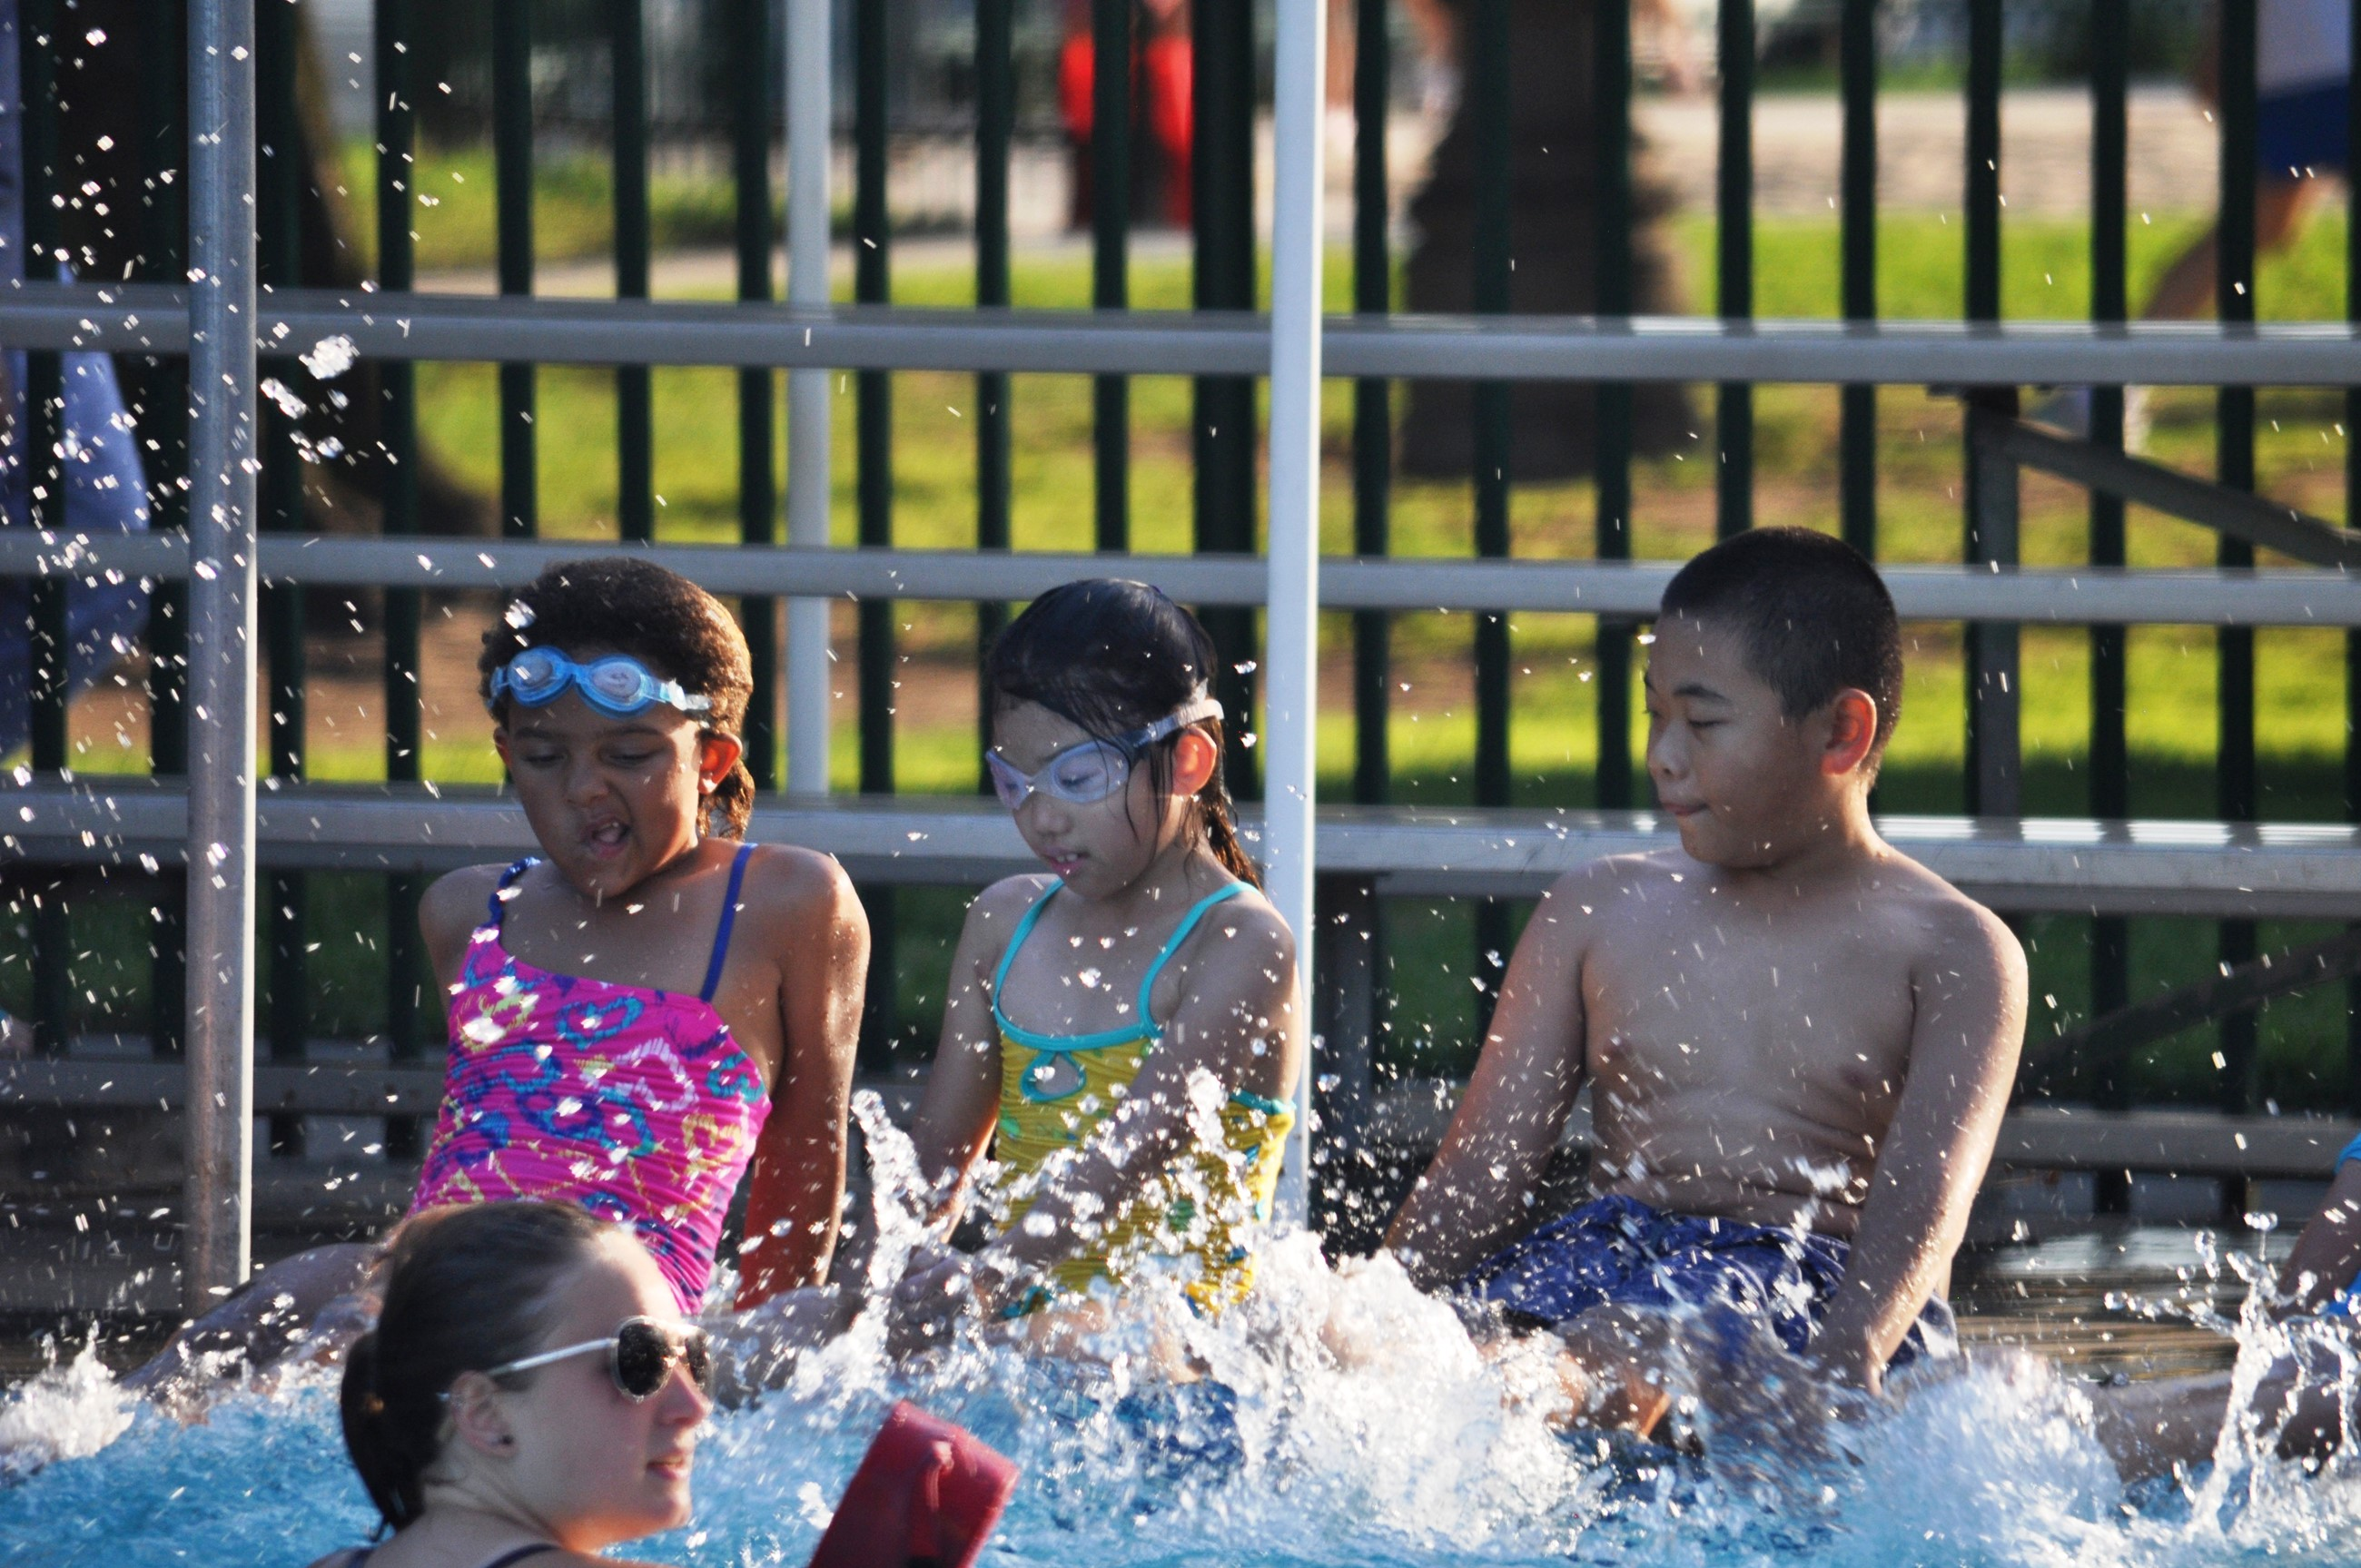 swim lessons instruction pool learn to swim smith park splash lifeguard